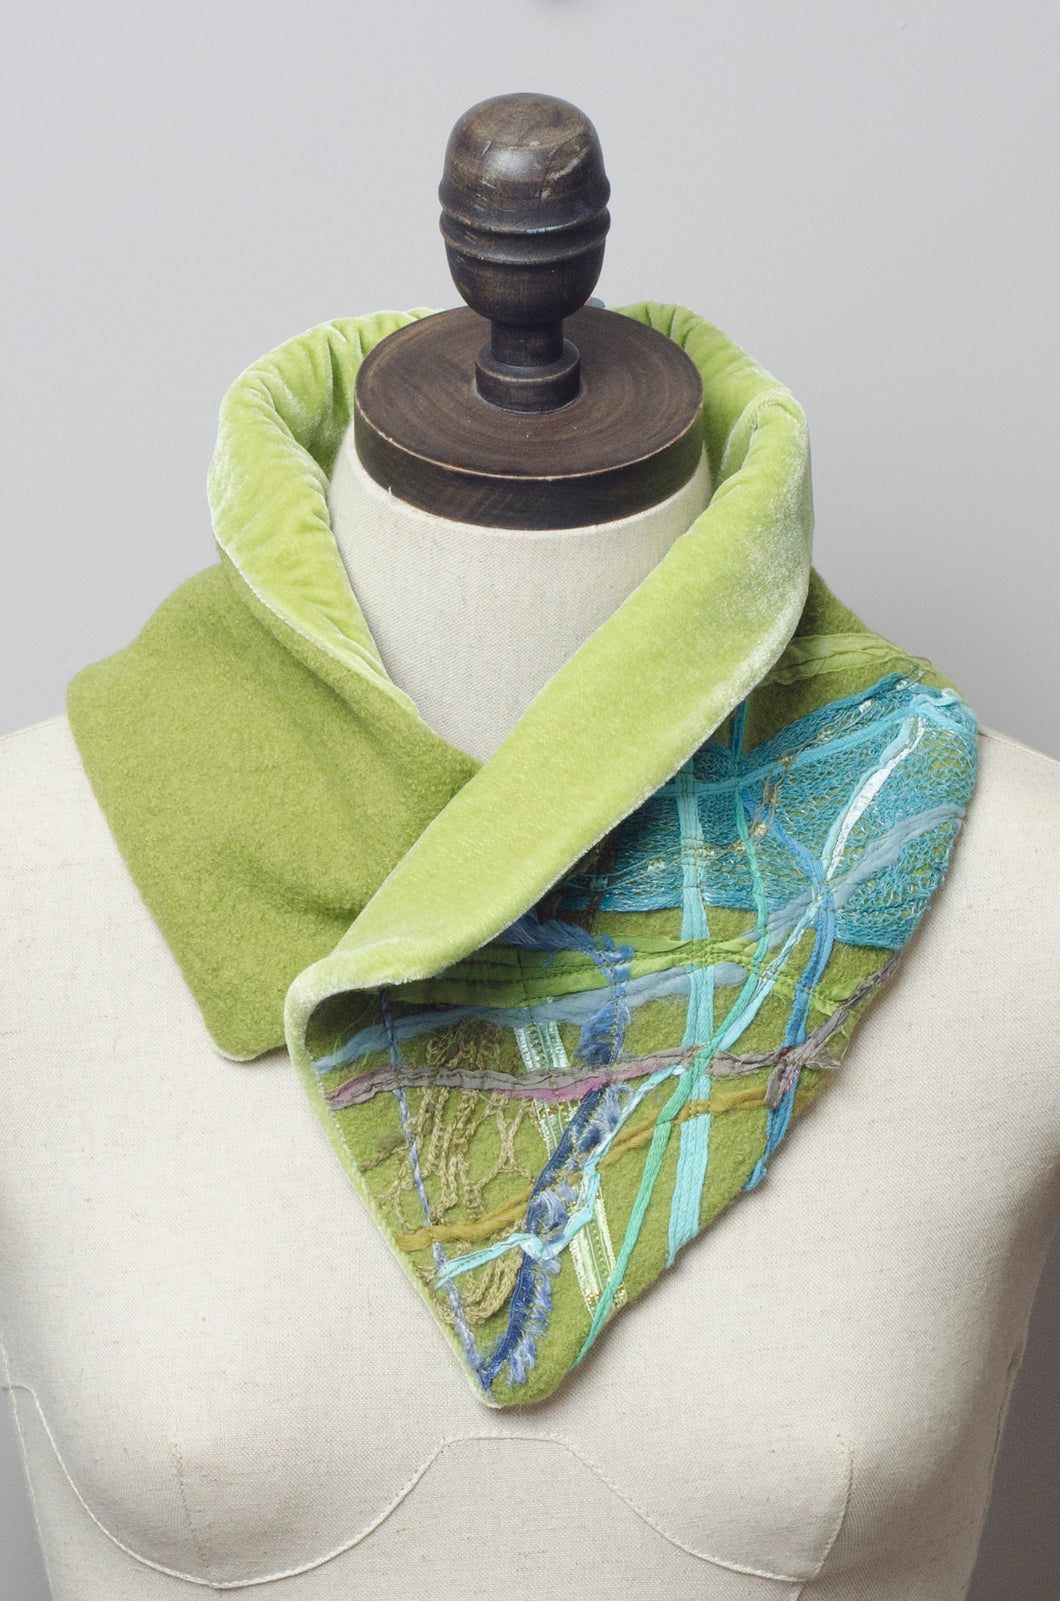 Embellished Wool & Velvet Neck Wrap in Lime Green - Scarf - Megan Crook